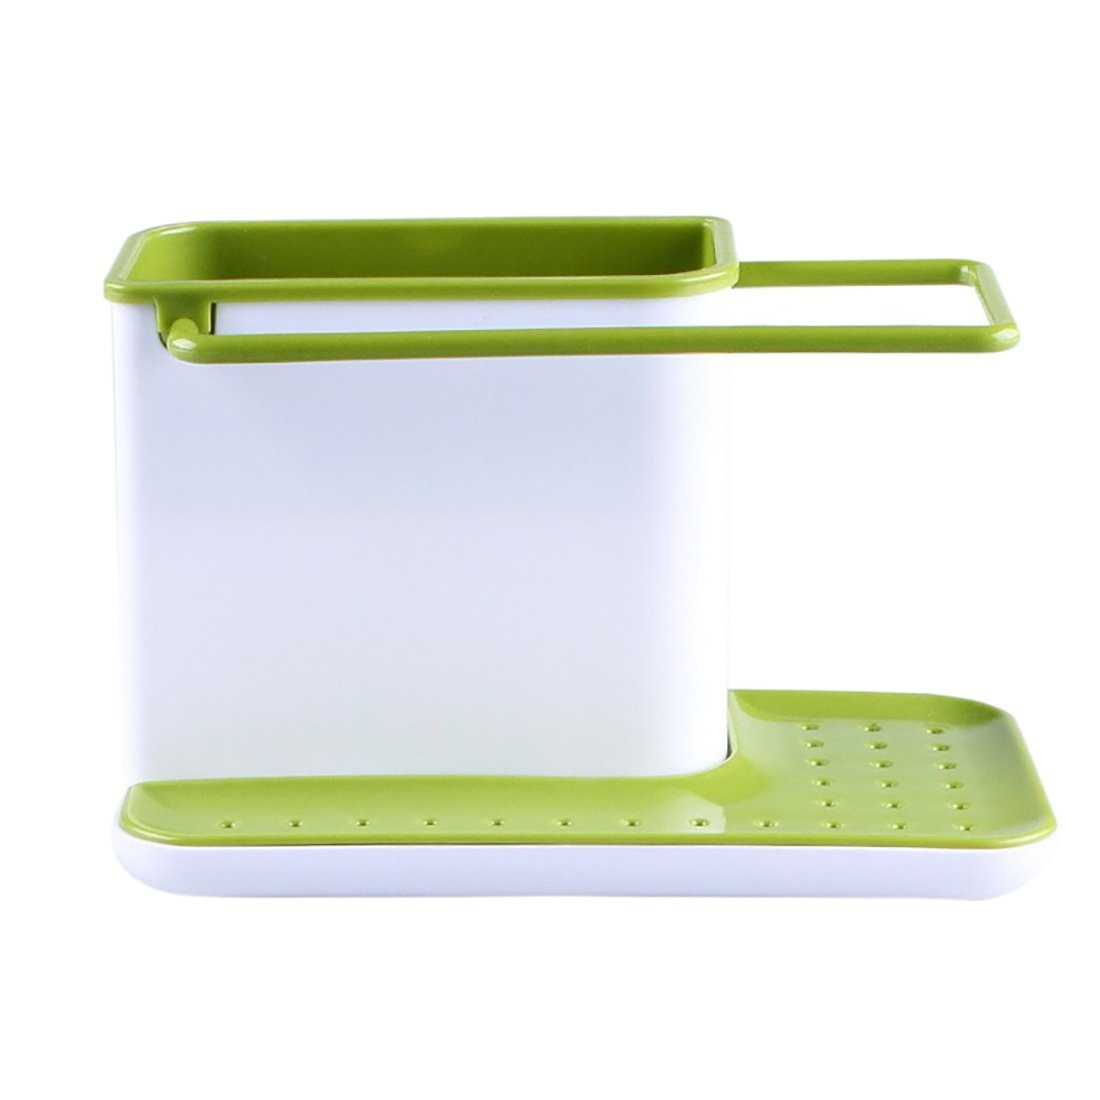 Sink Caddy Kitchen Sink Organizer Sponge Holder Dishwasher-Safe (Light green)